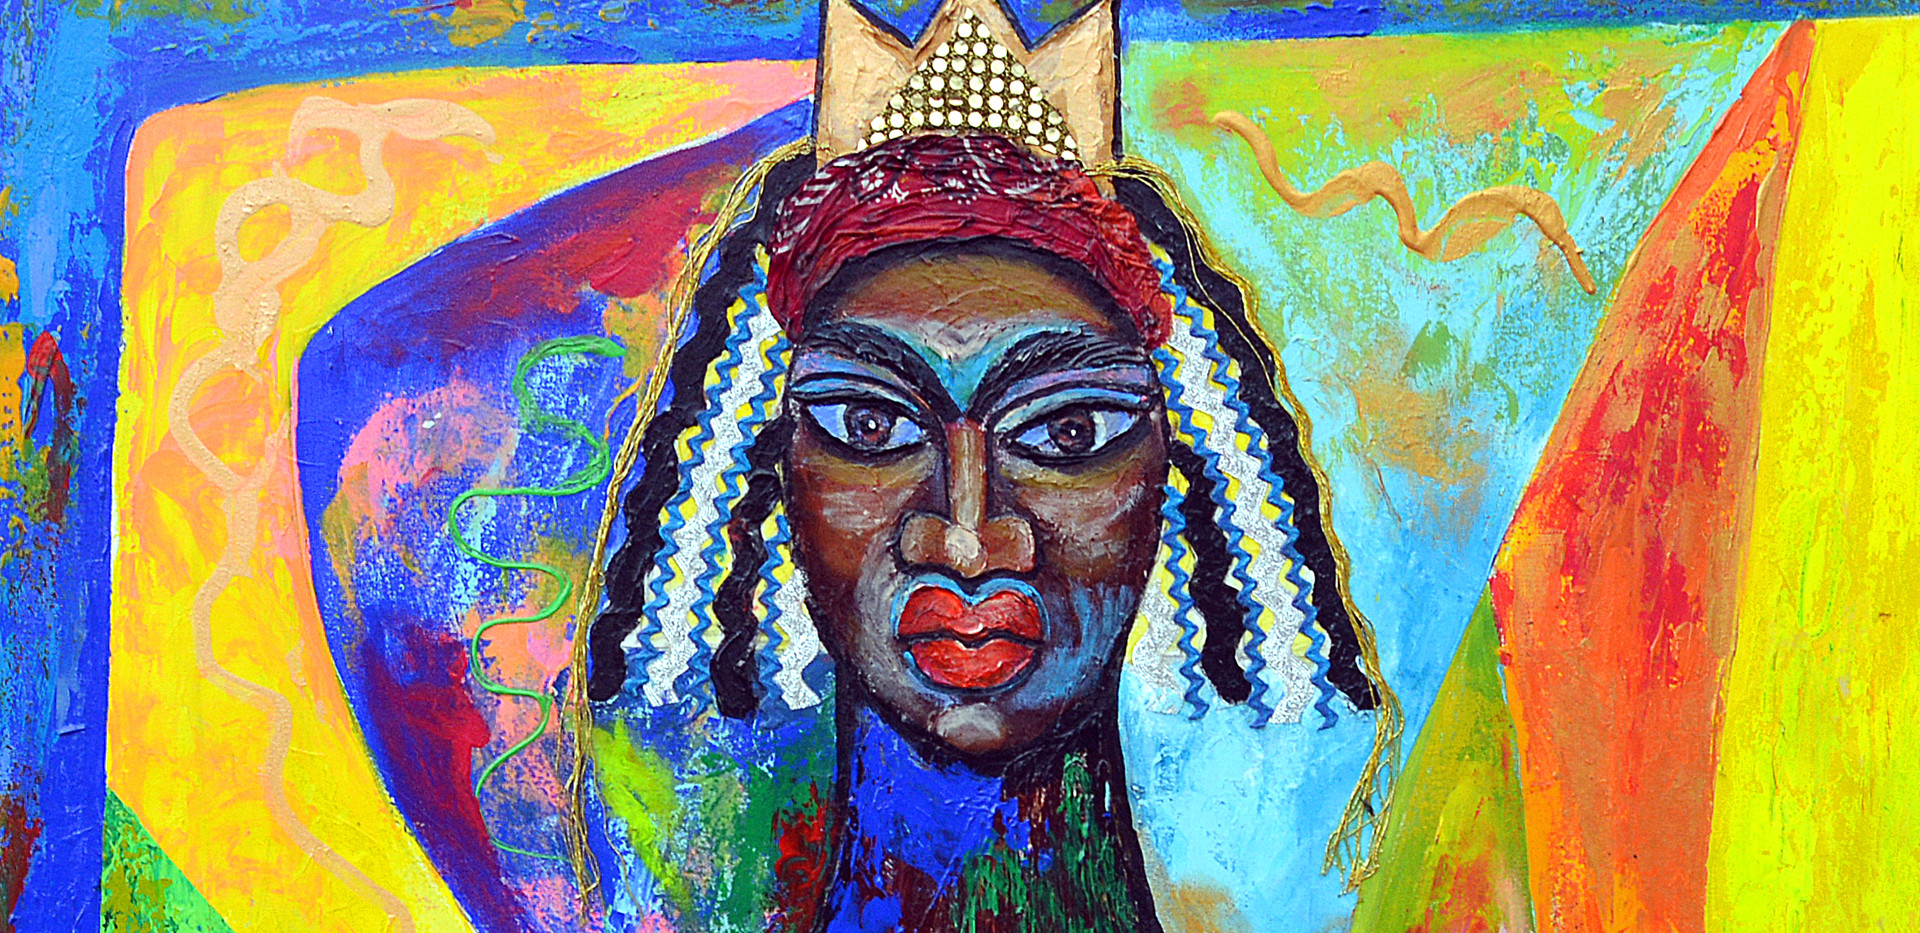 Miss Spirit of Cotton (SOLD)